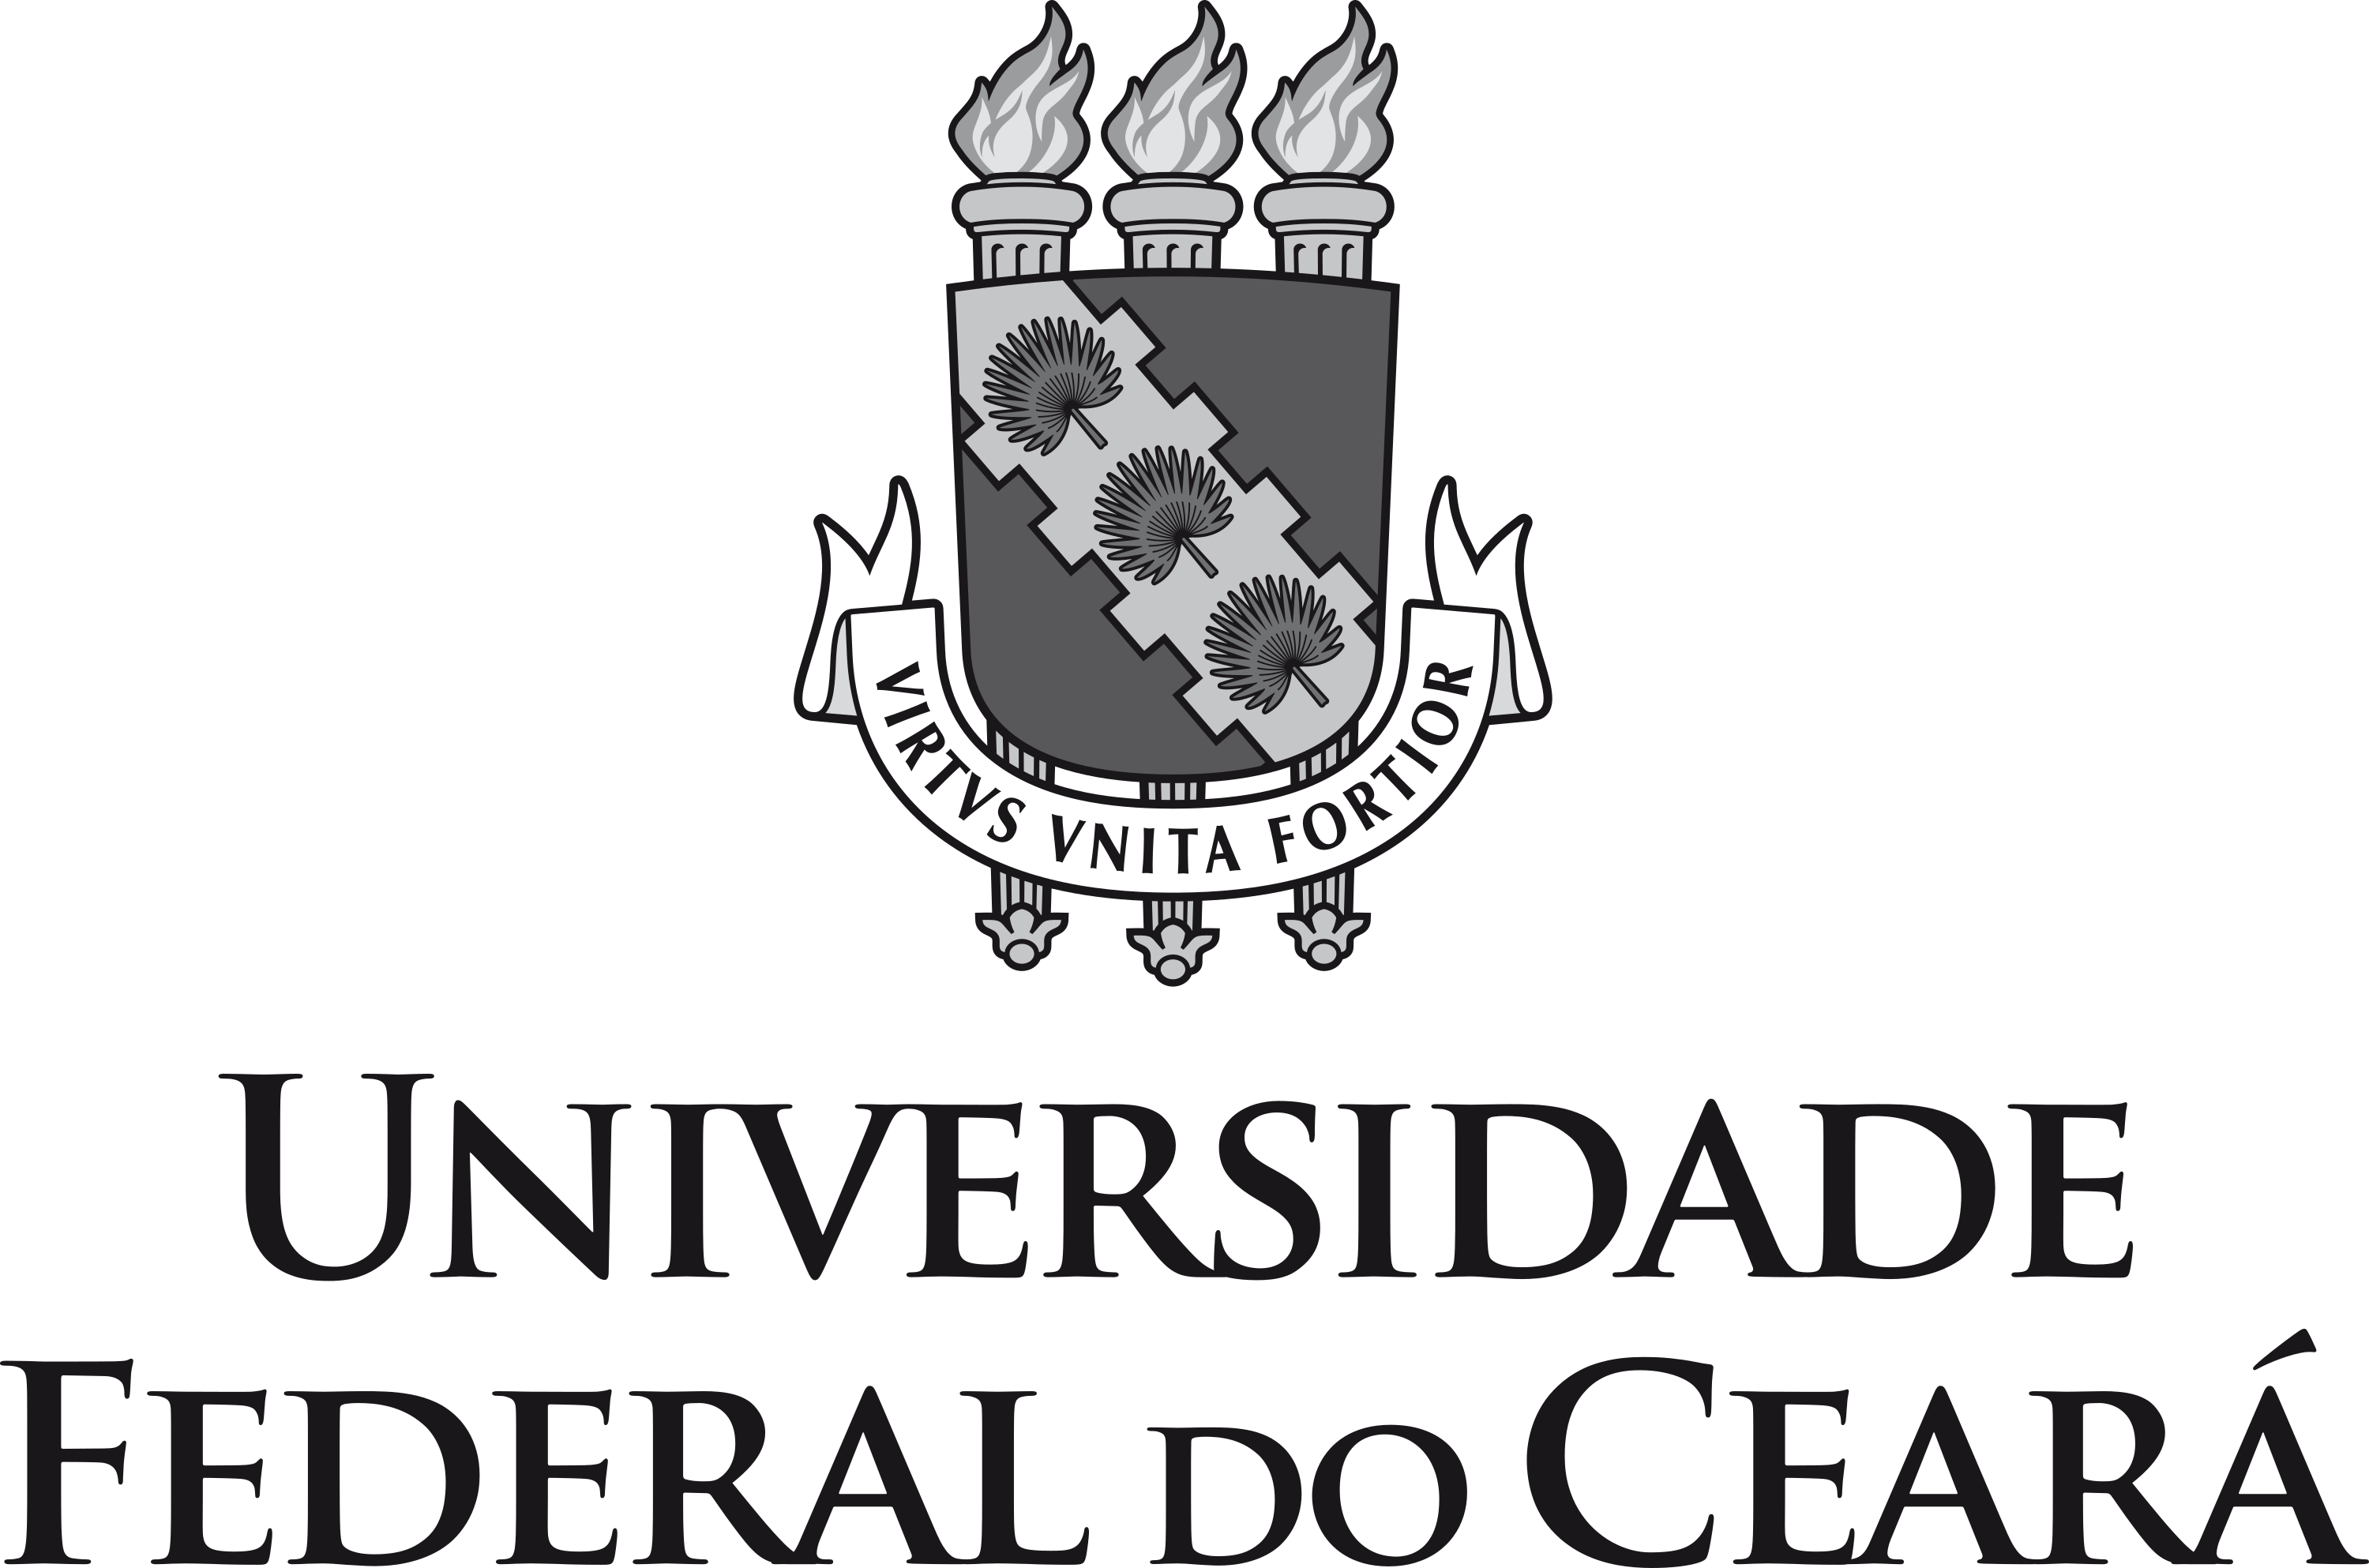 Ufc Logo Universidade. Universidade Federal do Ceara Logo.